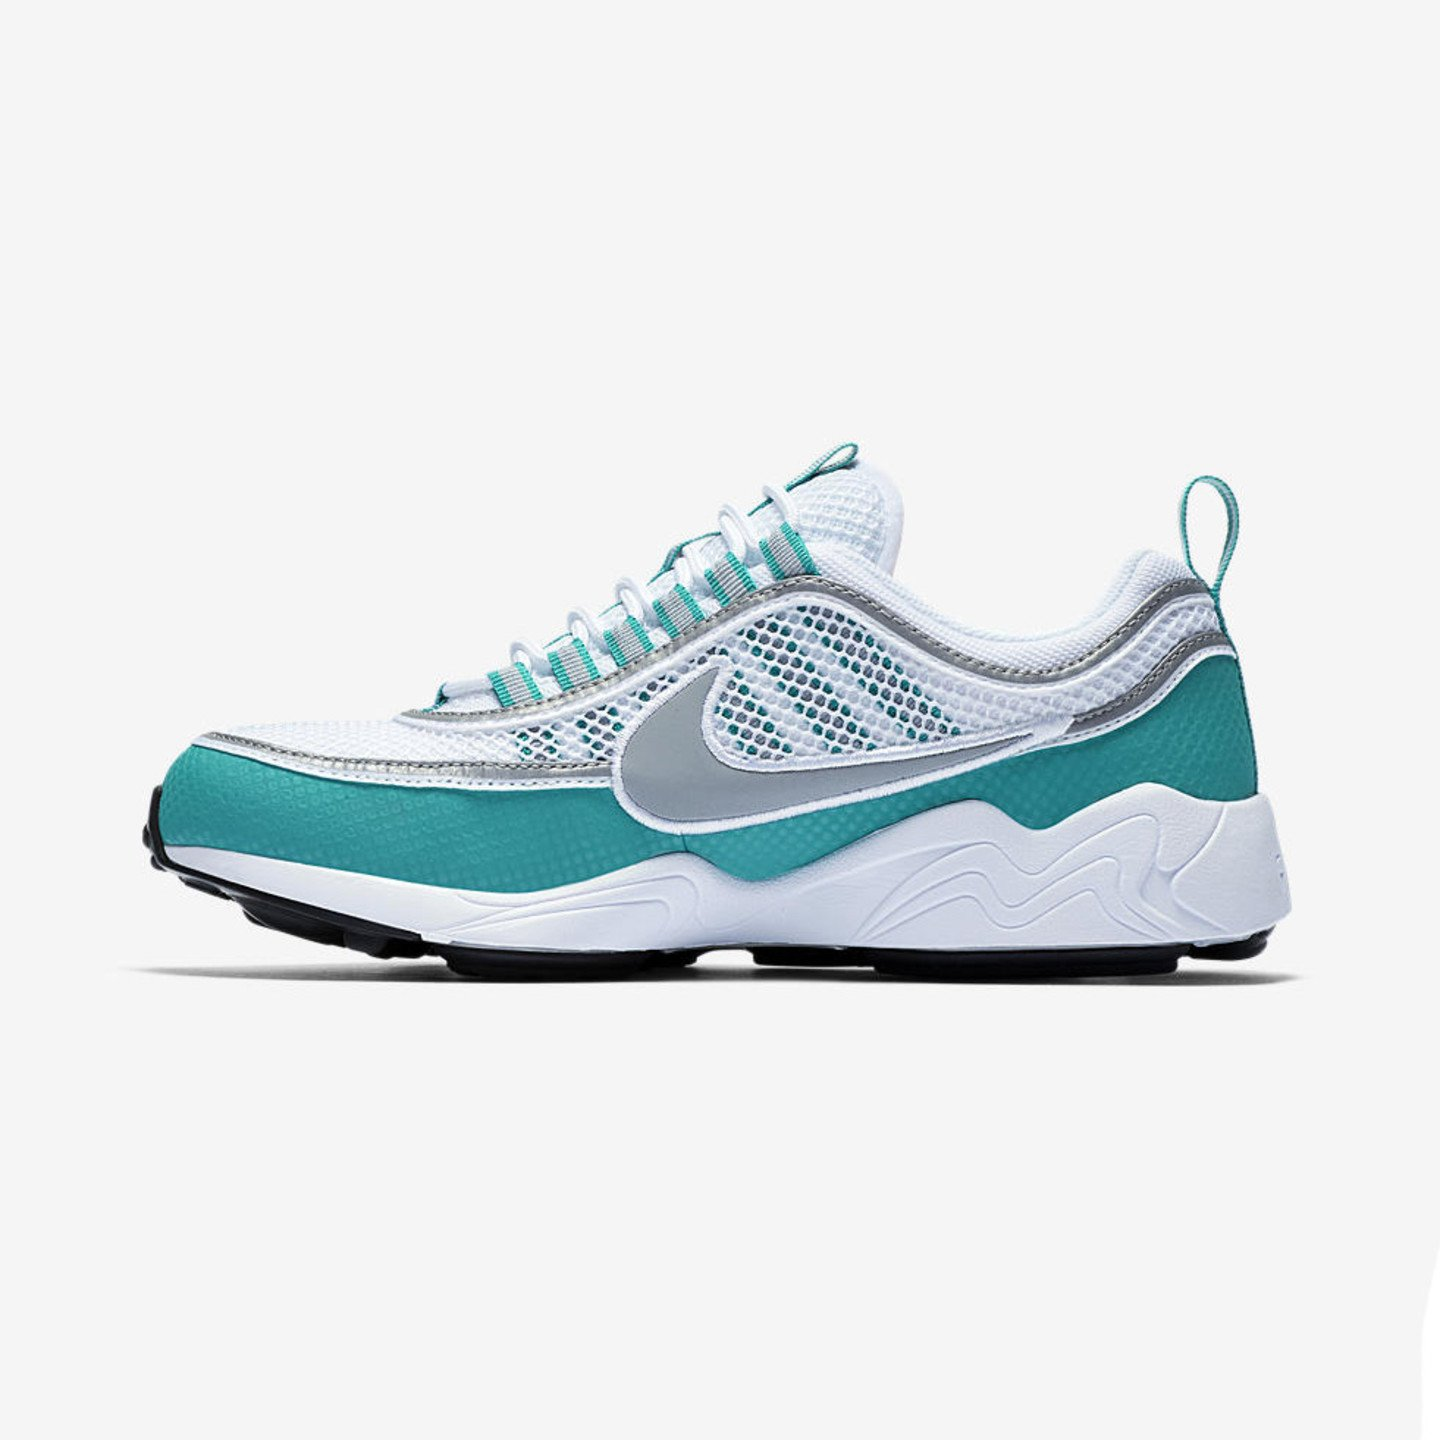 Nike Air Zoom Spiridon White / Silver / Turbo Green / Laser Orange 849776-102-42